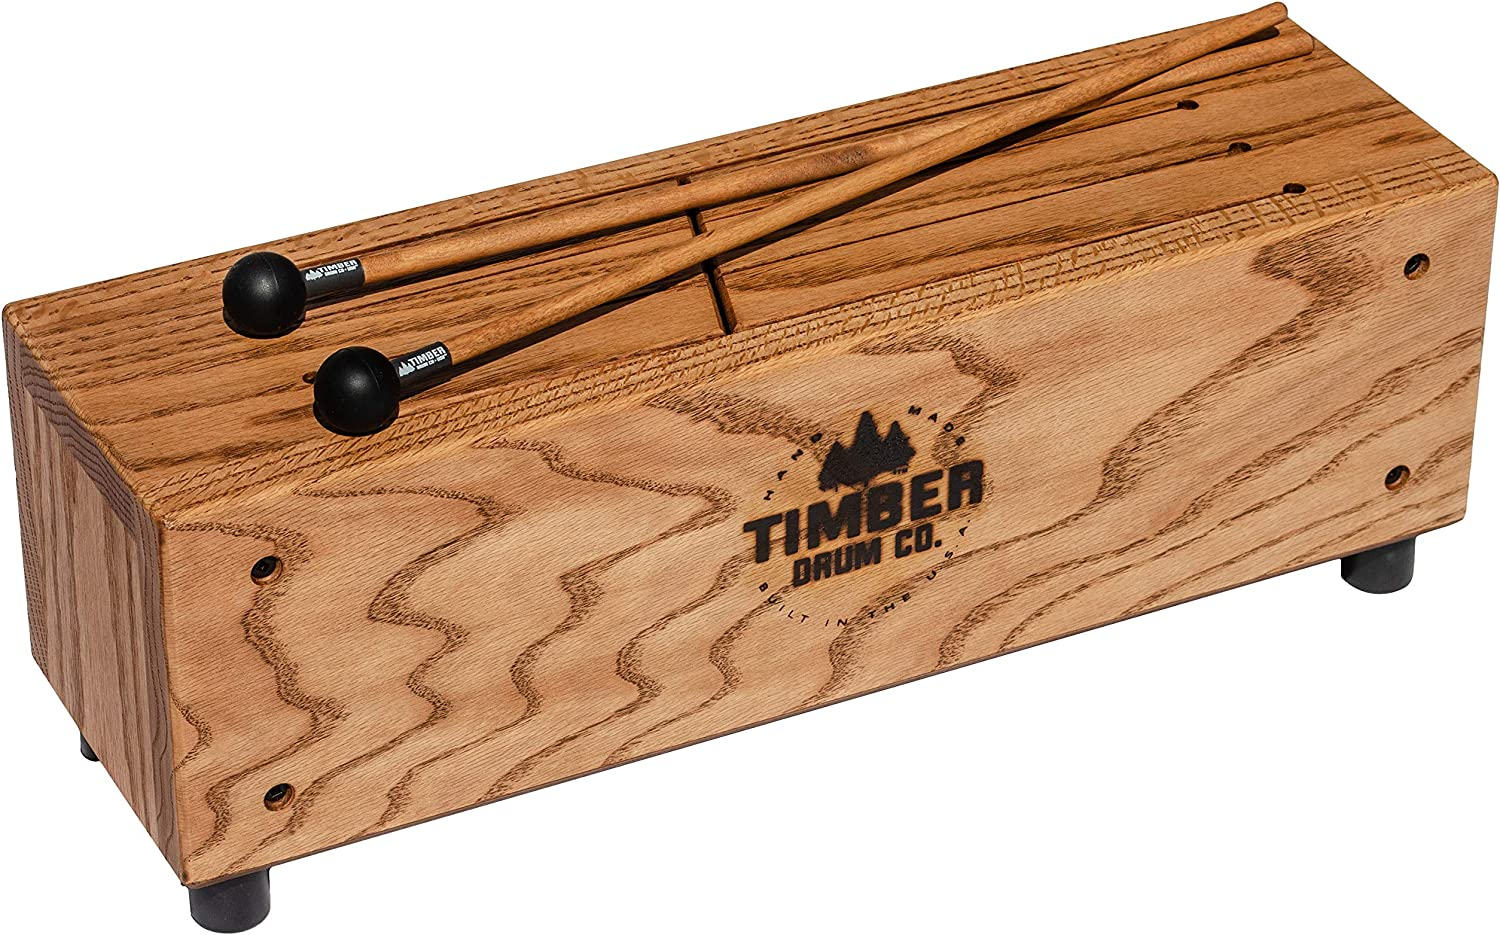 Timber Drum Co. Slit Tongue Log Drum with Mallets – MADE IN U.S.A. – Six Soft Melodic Notes from Pre-tuned Scale for Pleasant Sounds, Handcrafted Solid Tennessee Hardwood (T18-M)